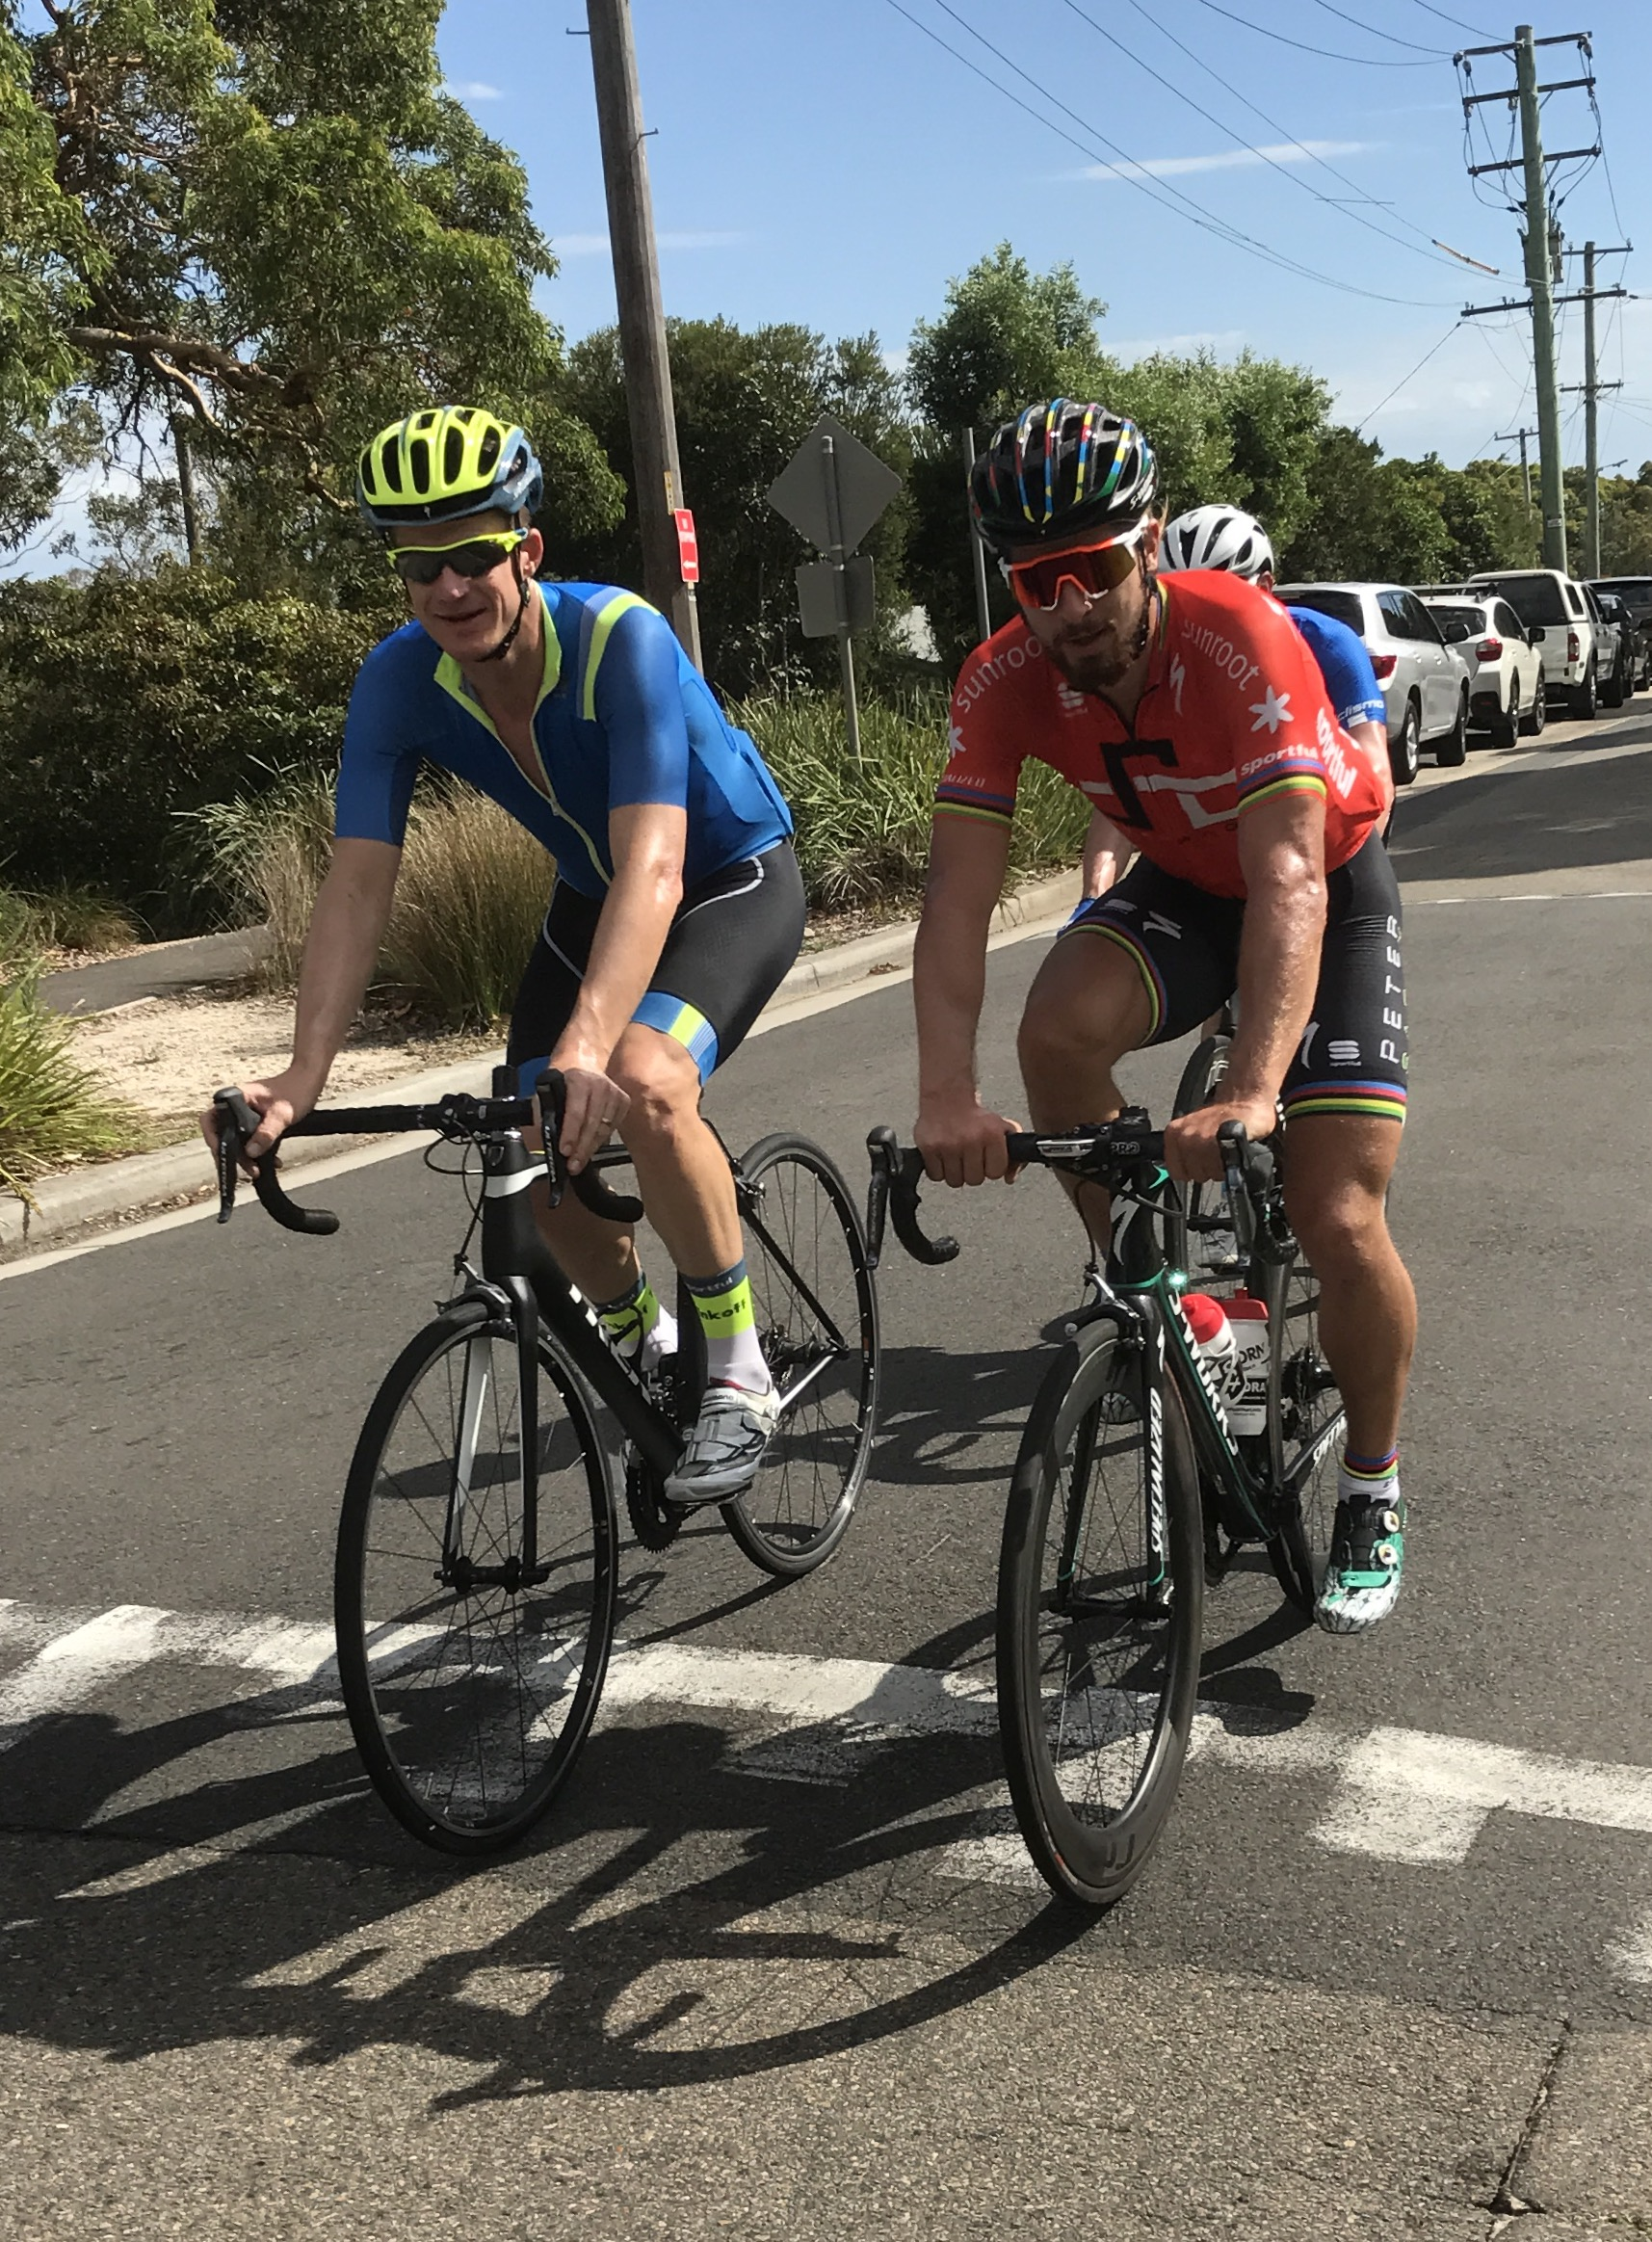 """December 31 ... calmly driving two Belgian friends around Chowder Bay near Mosman chasing a good coffee .... hang on a minute ... isn't that Peter Sagan & Mick Rogers ! ? ... can't be ! ? ... double take ...yep, """"Peter"""" on the knicks sort of gave it all away. Nobody is ever going to believe this ..."""